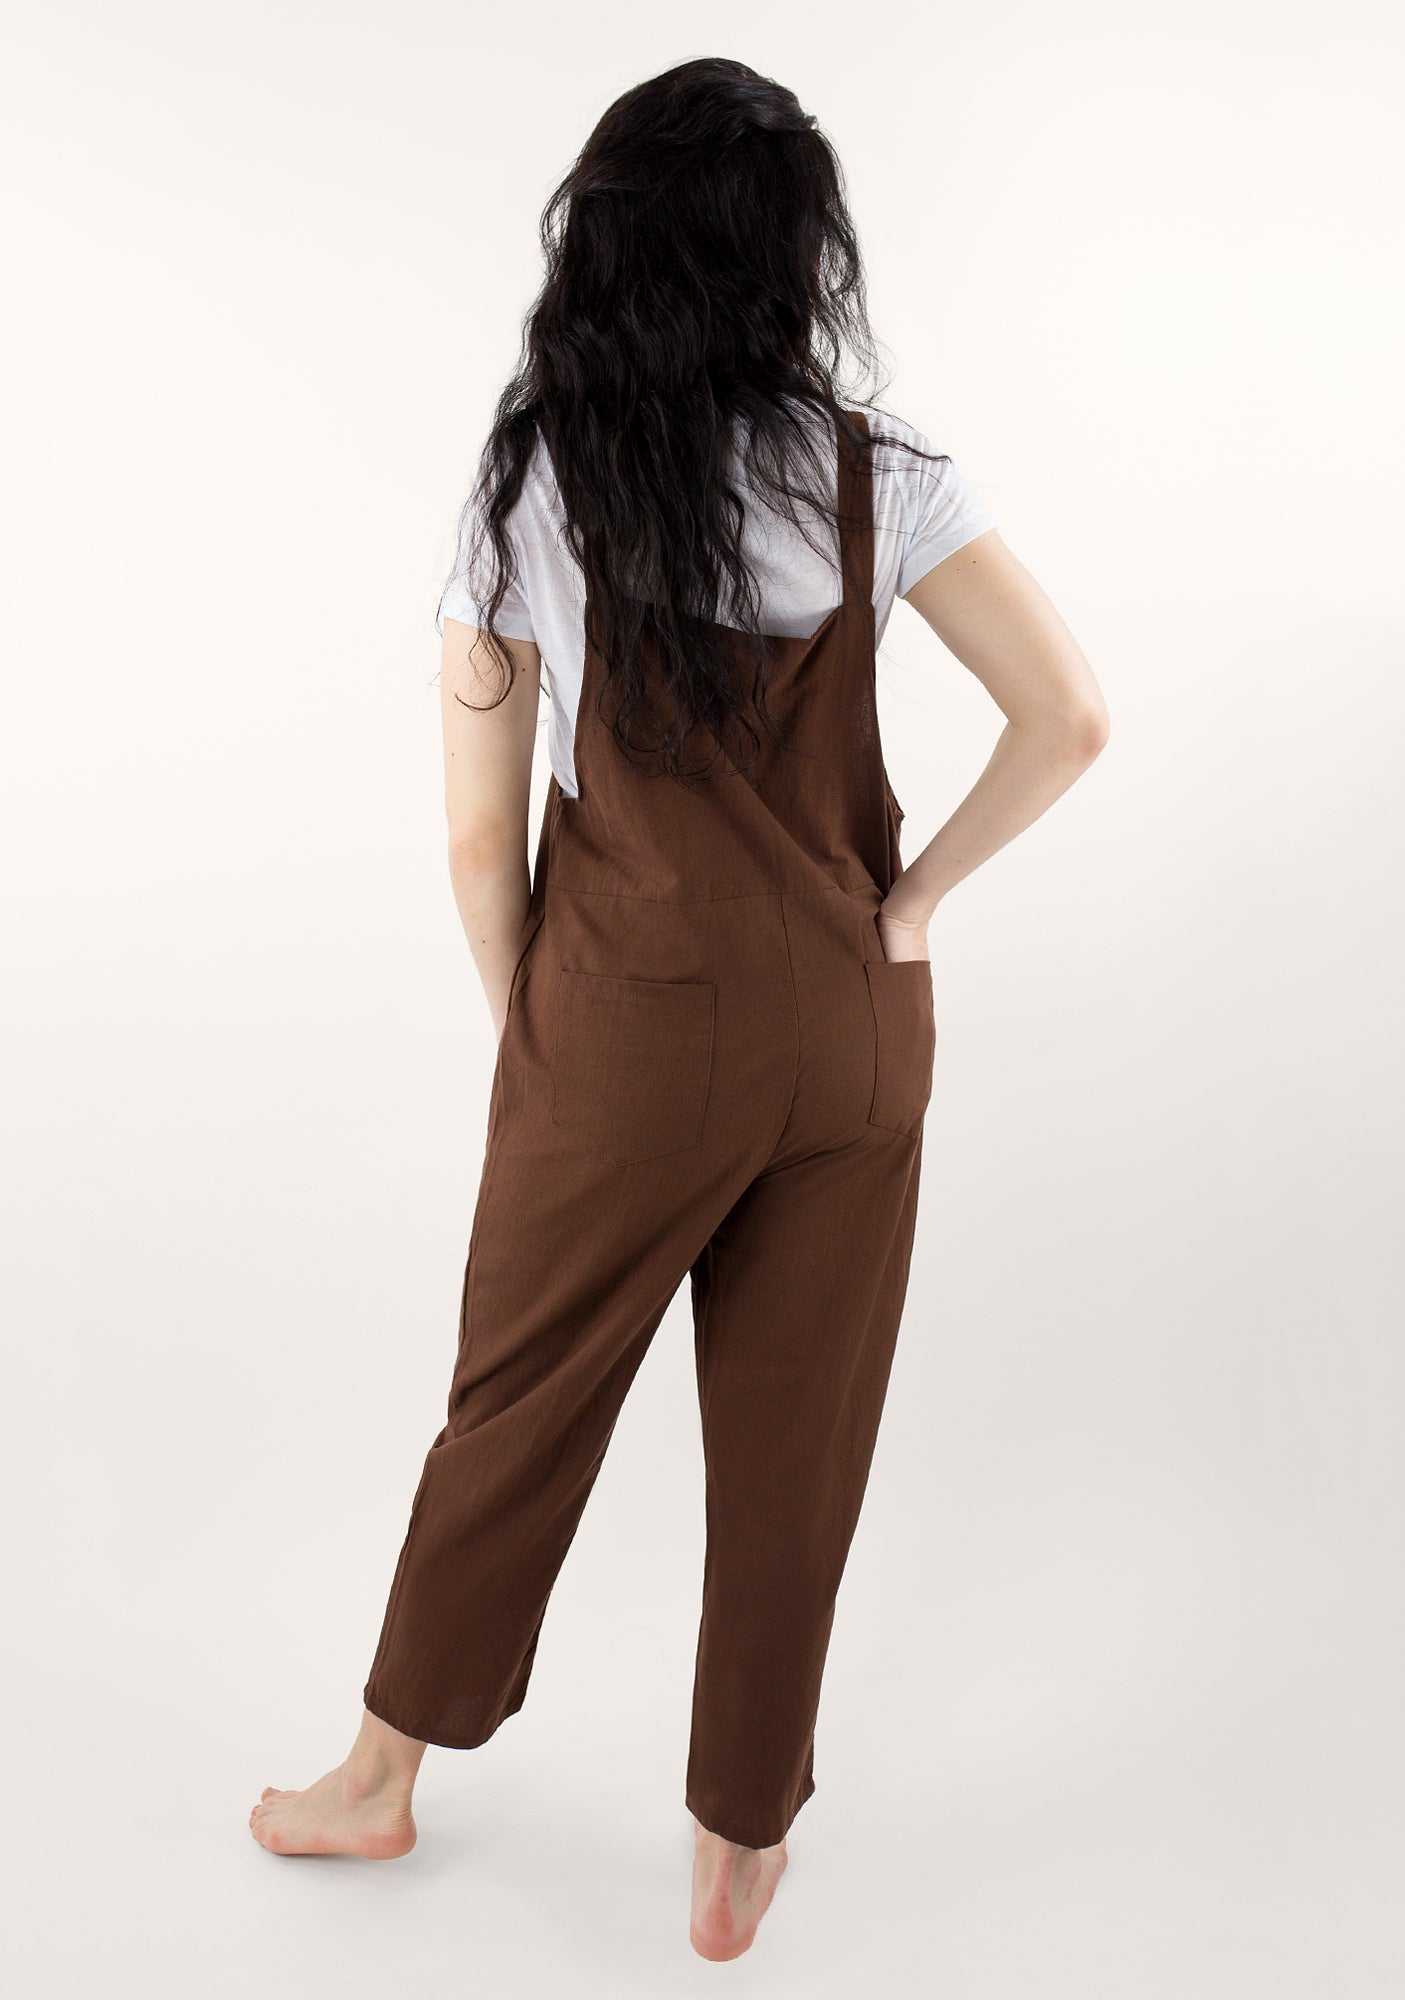 4655e647afe3 Ava Cotton Overalls (2 Colors) - Nordkudd